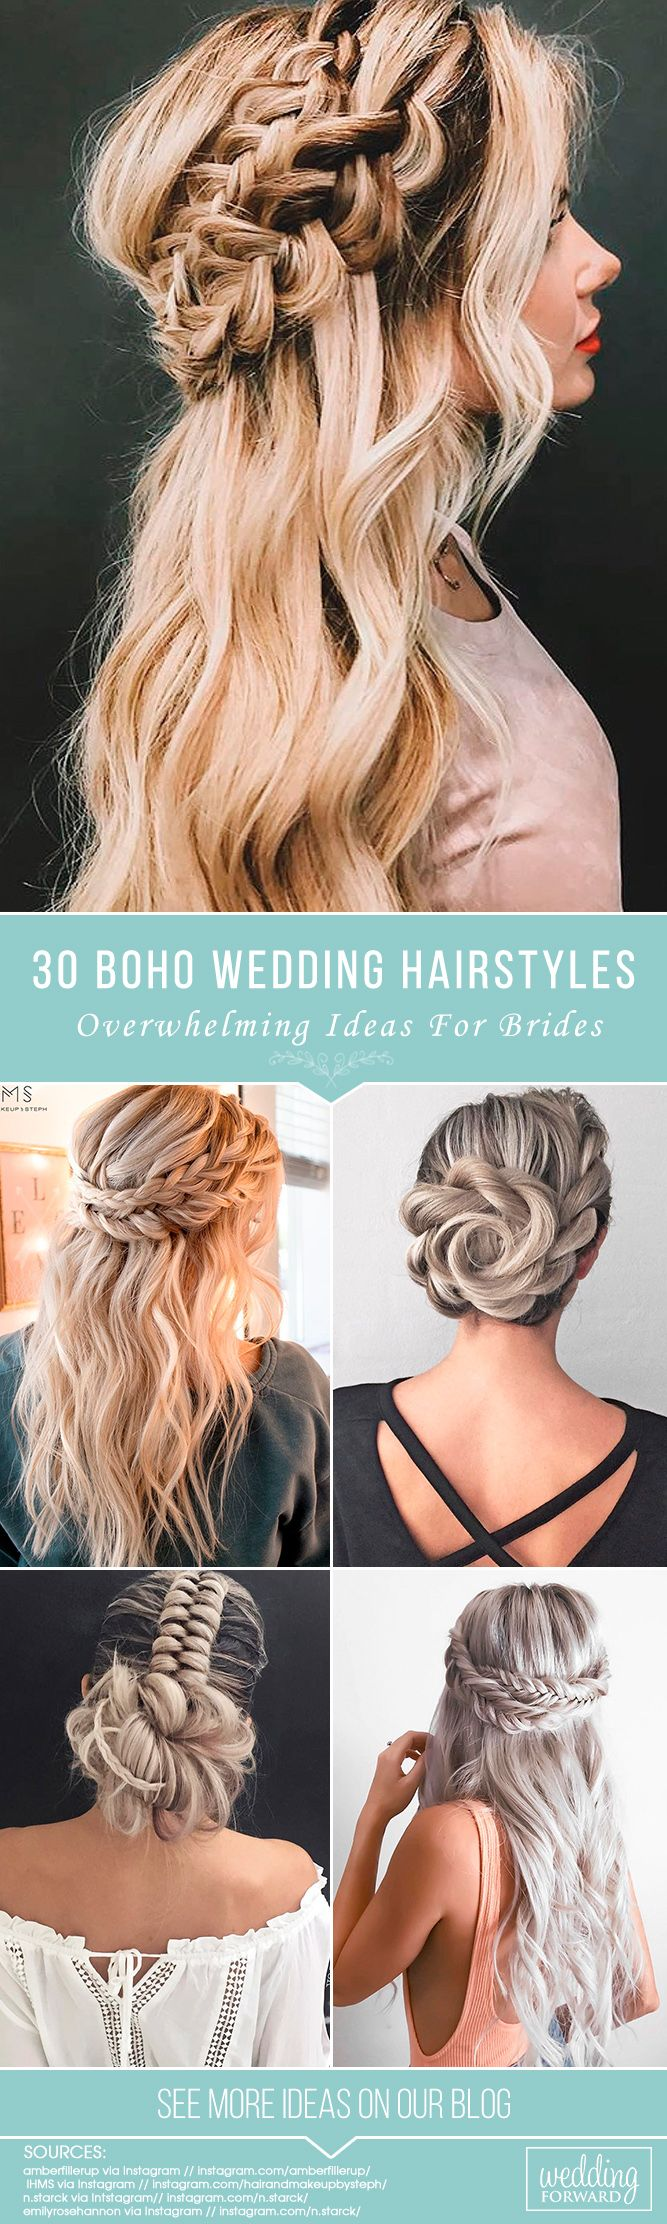 30 Overwhelming Boho Wedding Hairstyles ❤ Here you will find a plethora of boh...